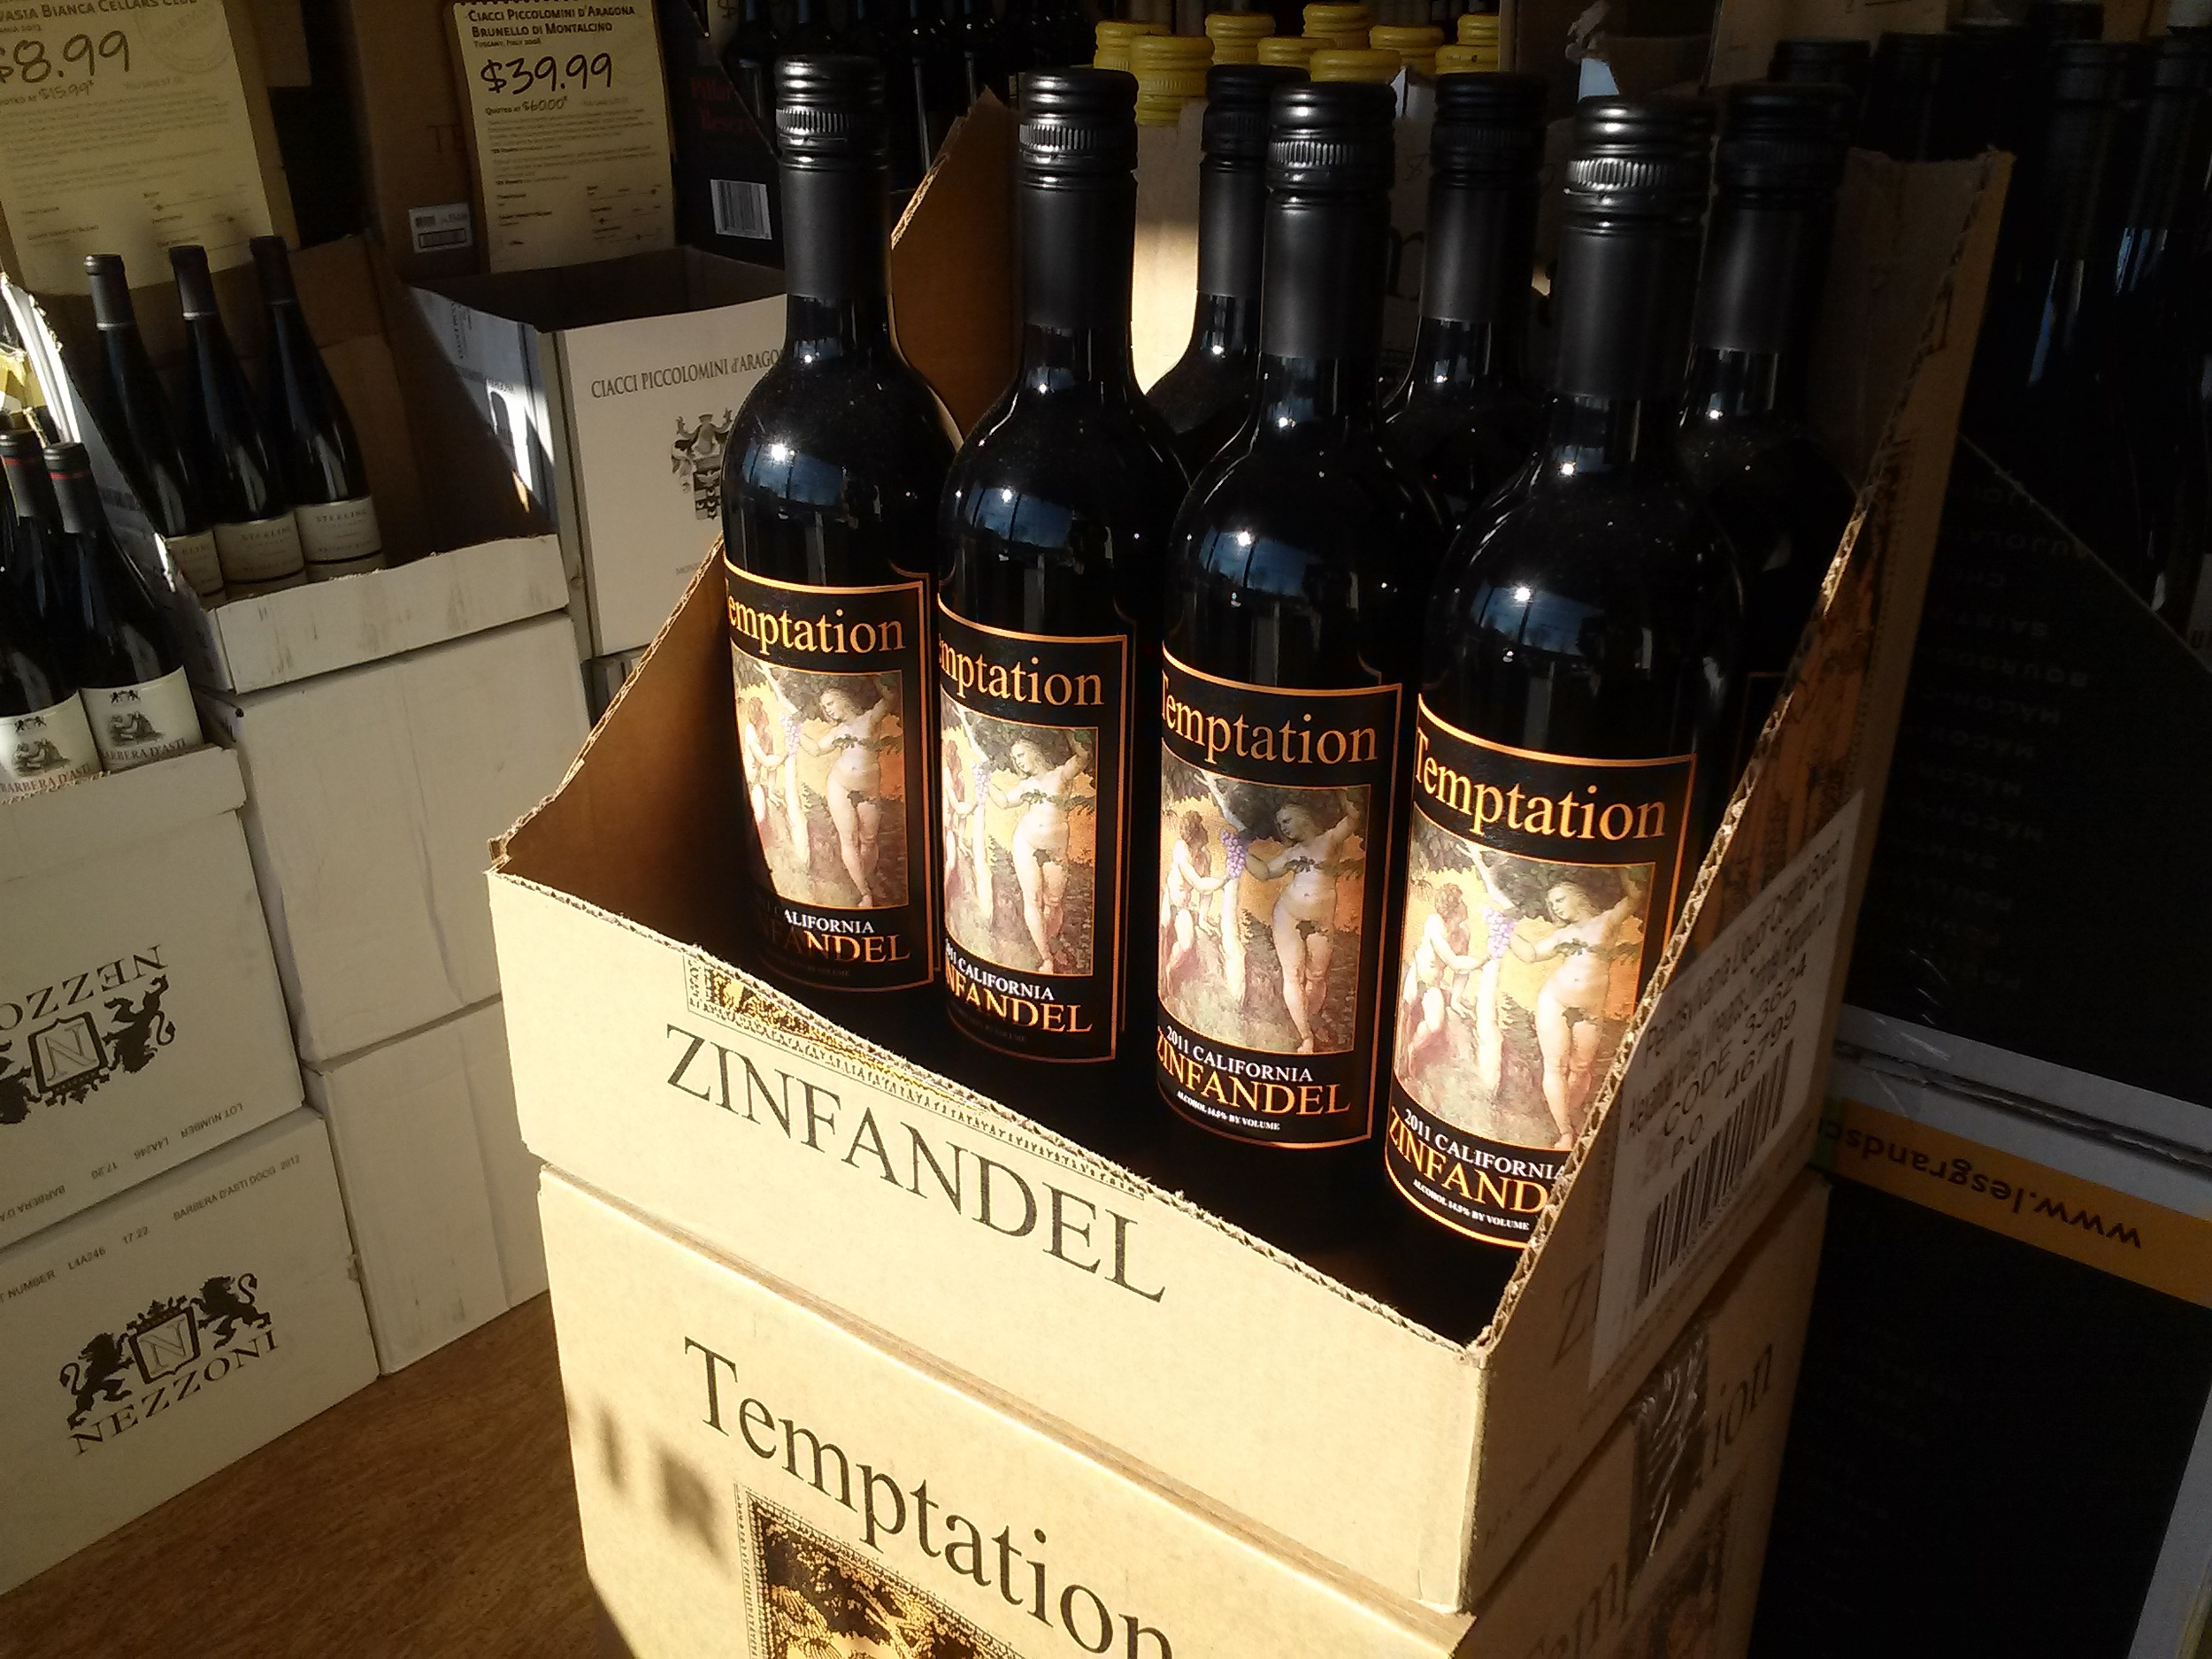 This CA Zinfandel was baking hot when I touched it. Maybe not a huge loss at about $10 (not sure what the price was), but still, do you want to buy  anything  that might be worthless?